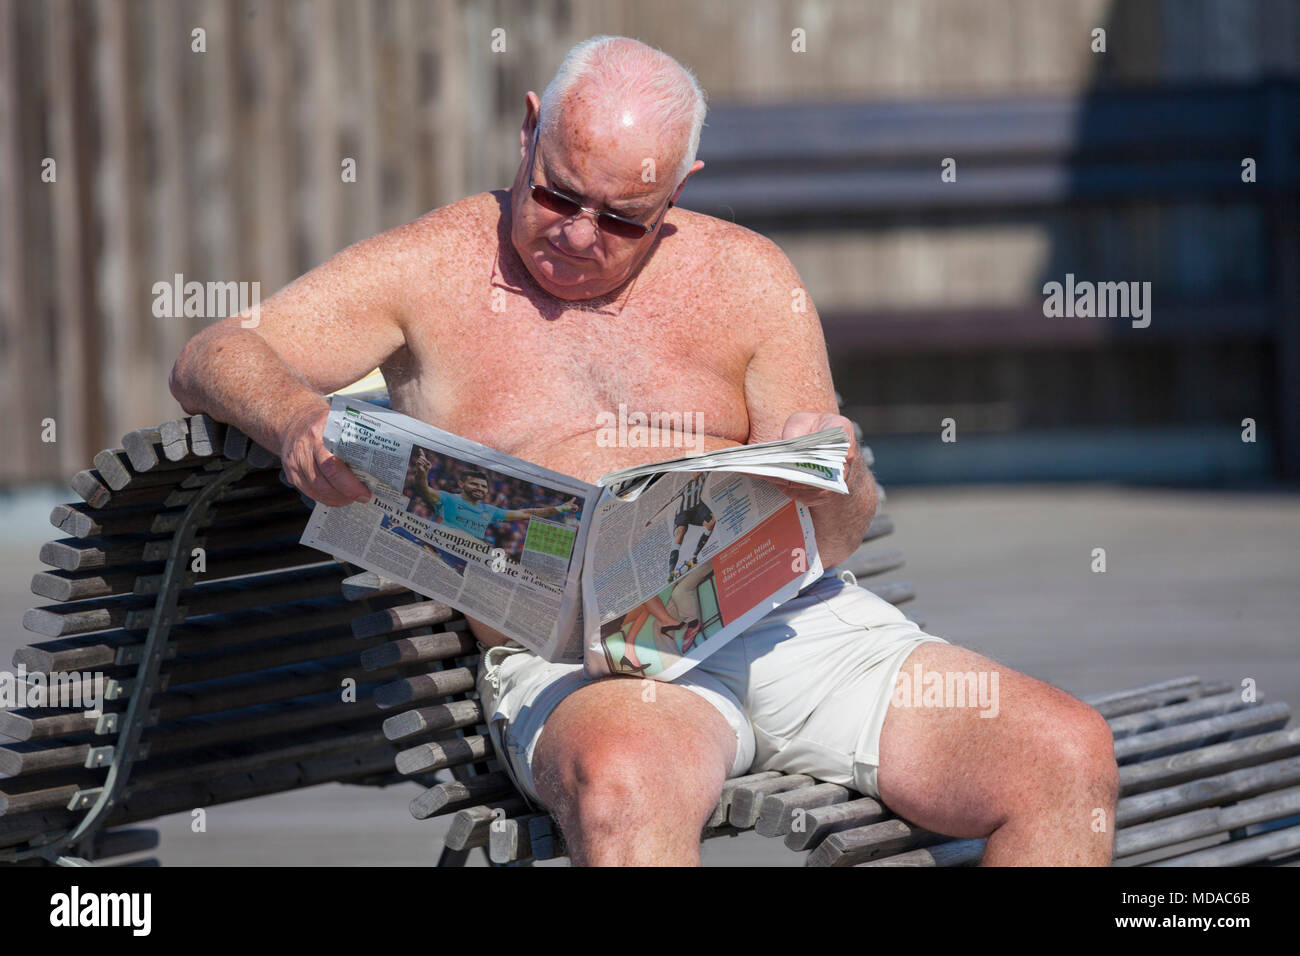 Hastings, East Sussex, UK. 19th Apr, 2018. UK Weather: A hot start to the day in the seaside town of Hastings on the South East coast with temperatures expected to exceed 23°C. Lots of people are out and about taking advantage of the mini heat wave that is hitting Britain. Man reads a newspaper while sunbathing sitting on a bench. © Paul Lawrenson 2018, Photo Credit: Paul Lawrenson / Alamy Live News - Stock Image